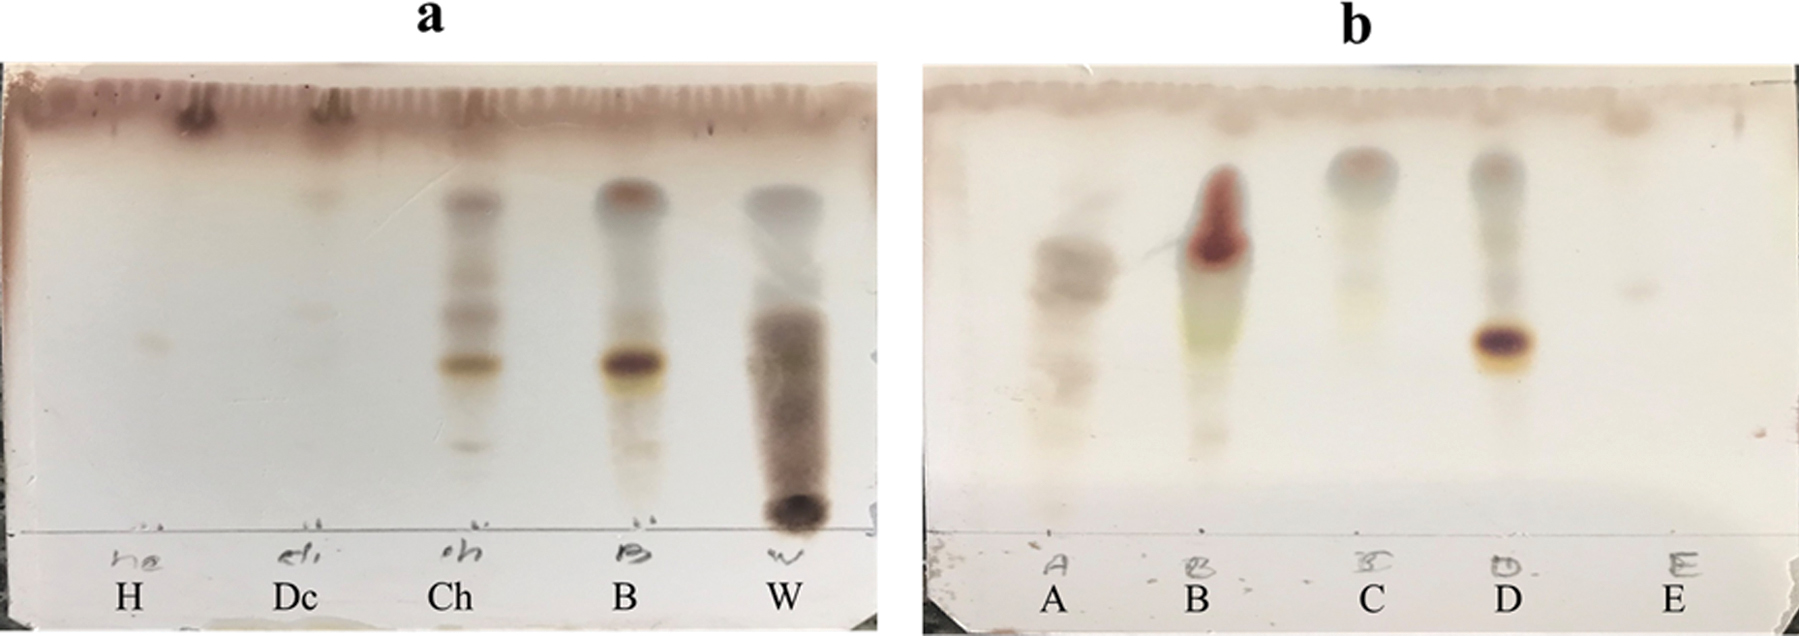 Figure 2: (A) Thin-layer chromatography (TLC) profile of partitions of <i>Verbascum alceoides</i>. H, Dc, Ch, B, and W represent hexane, dichloromethane, chloroform-methanol, butanol, and aqueous partitions, respectively. (B) TLC profile of fractions of butanolic partition of <i>V. alceoides.</i> Fraction D showed the well-known representative saponins